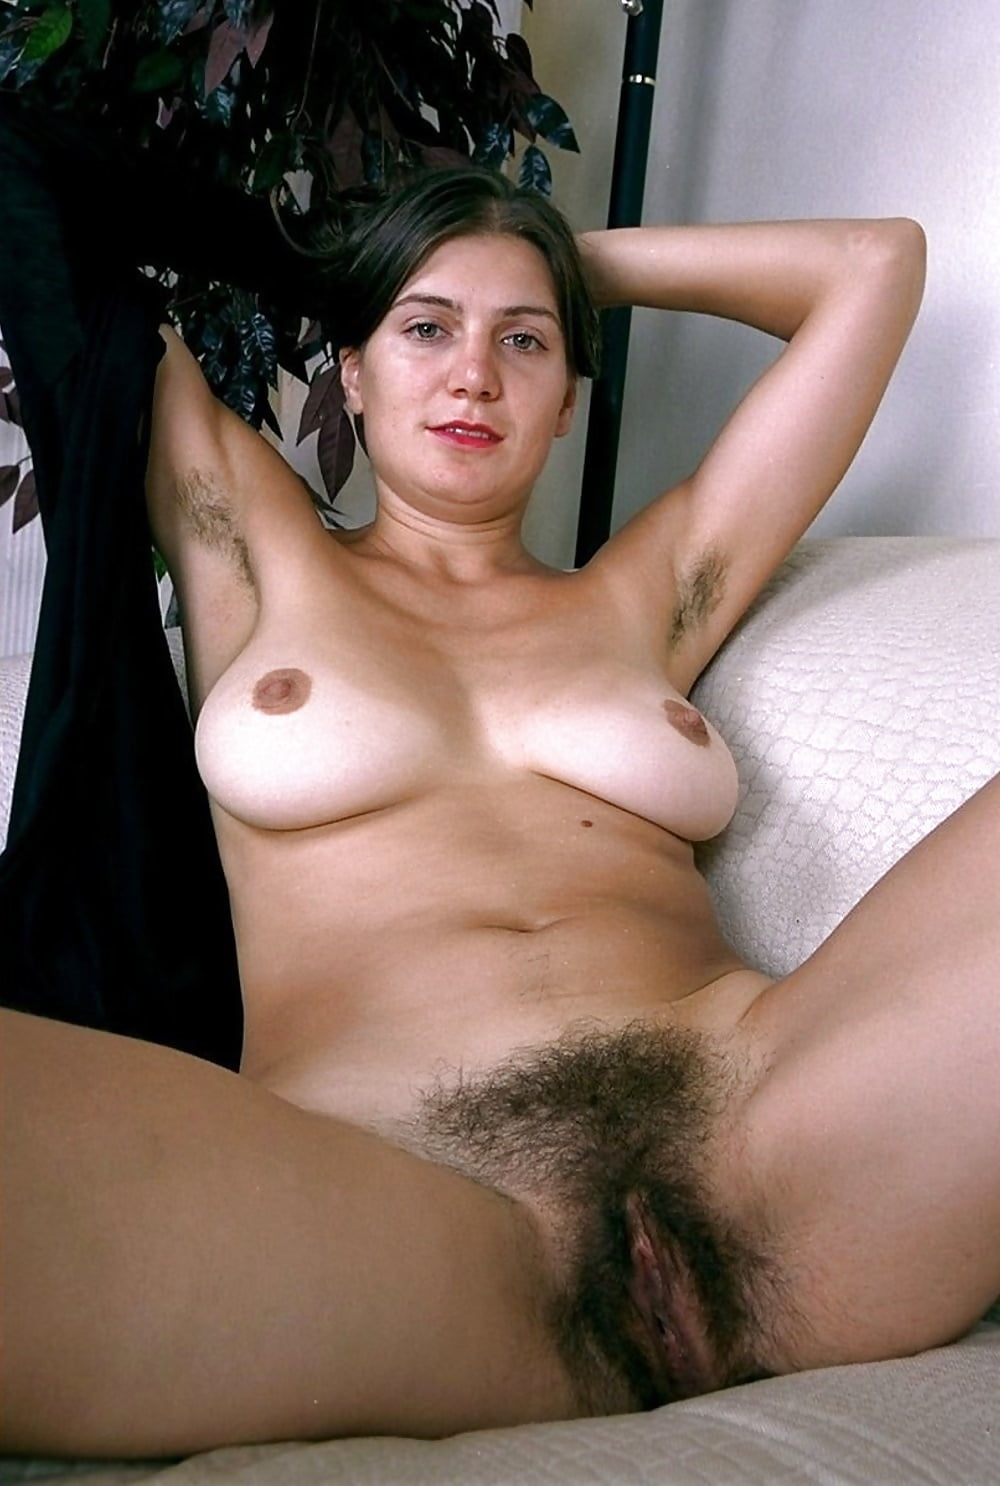 White naked woman with hairy pussy, sister cum stories